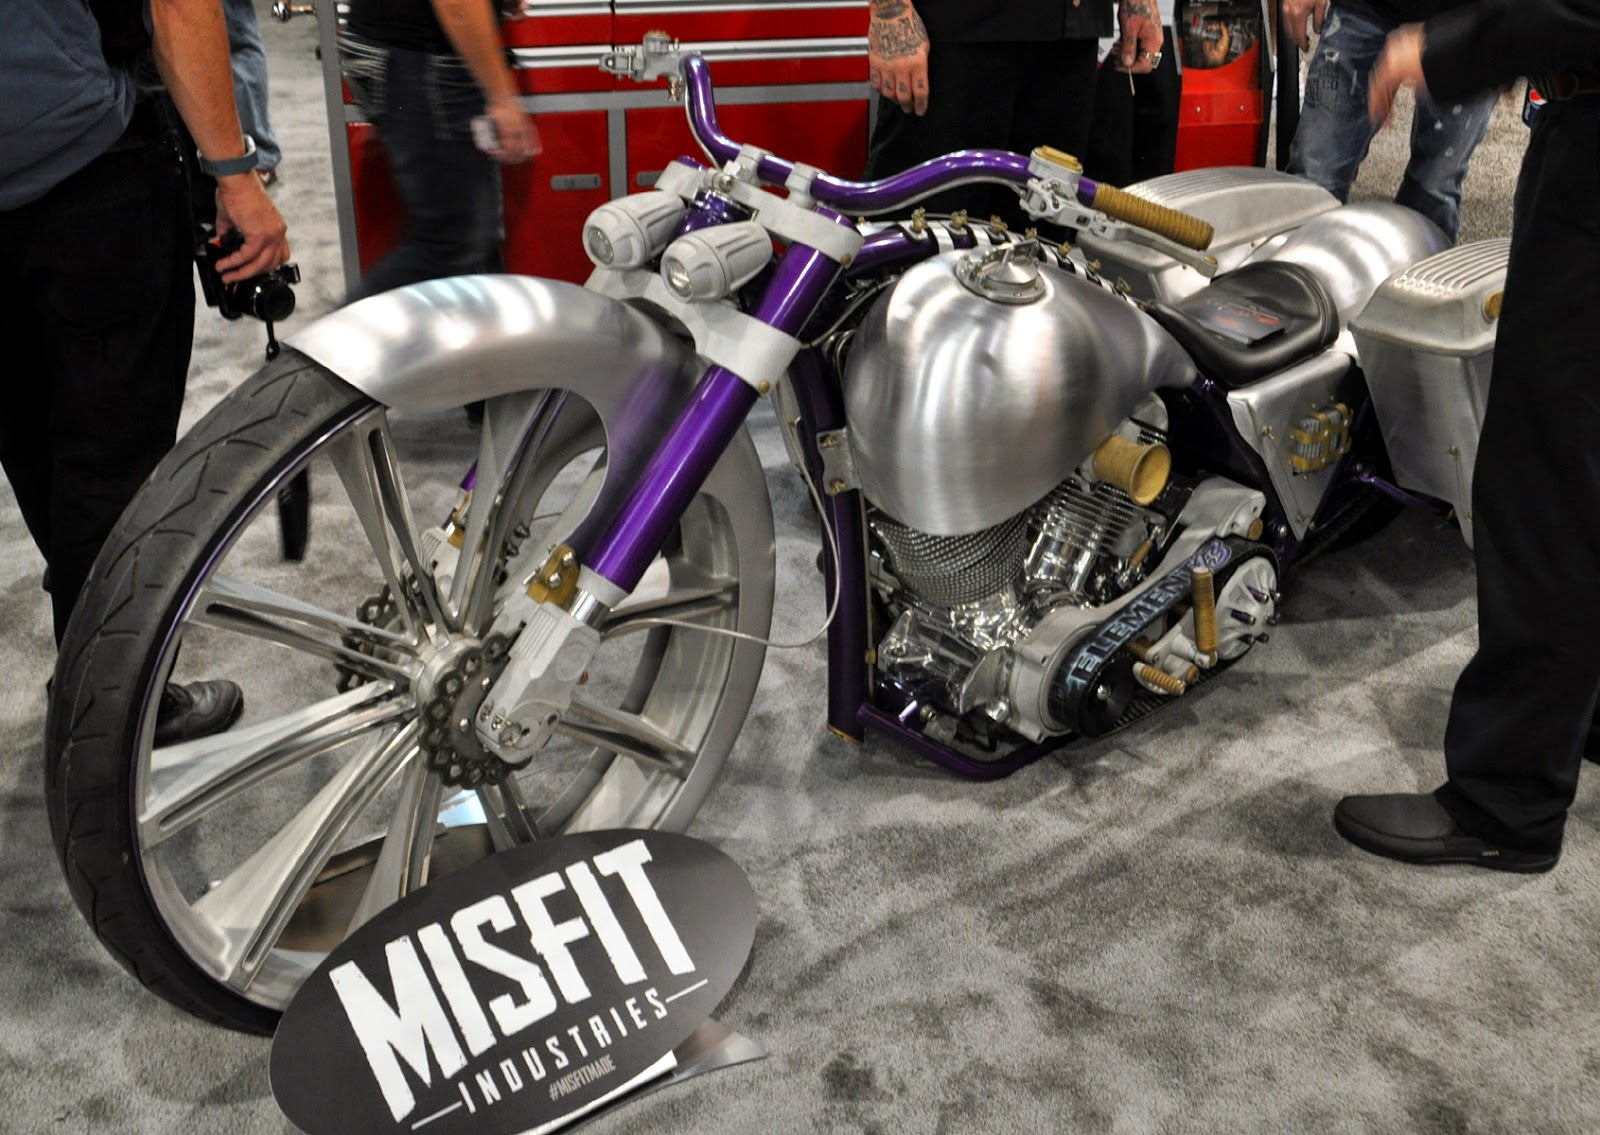 Custom Hood Ornaments >> Just A Car Guy: Misfit Industries motorcycle has some cool ...